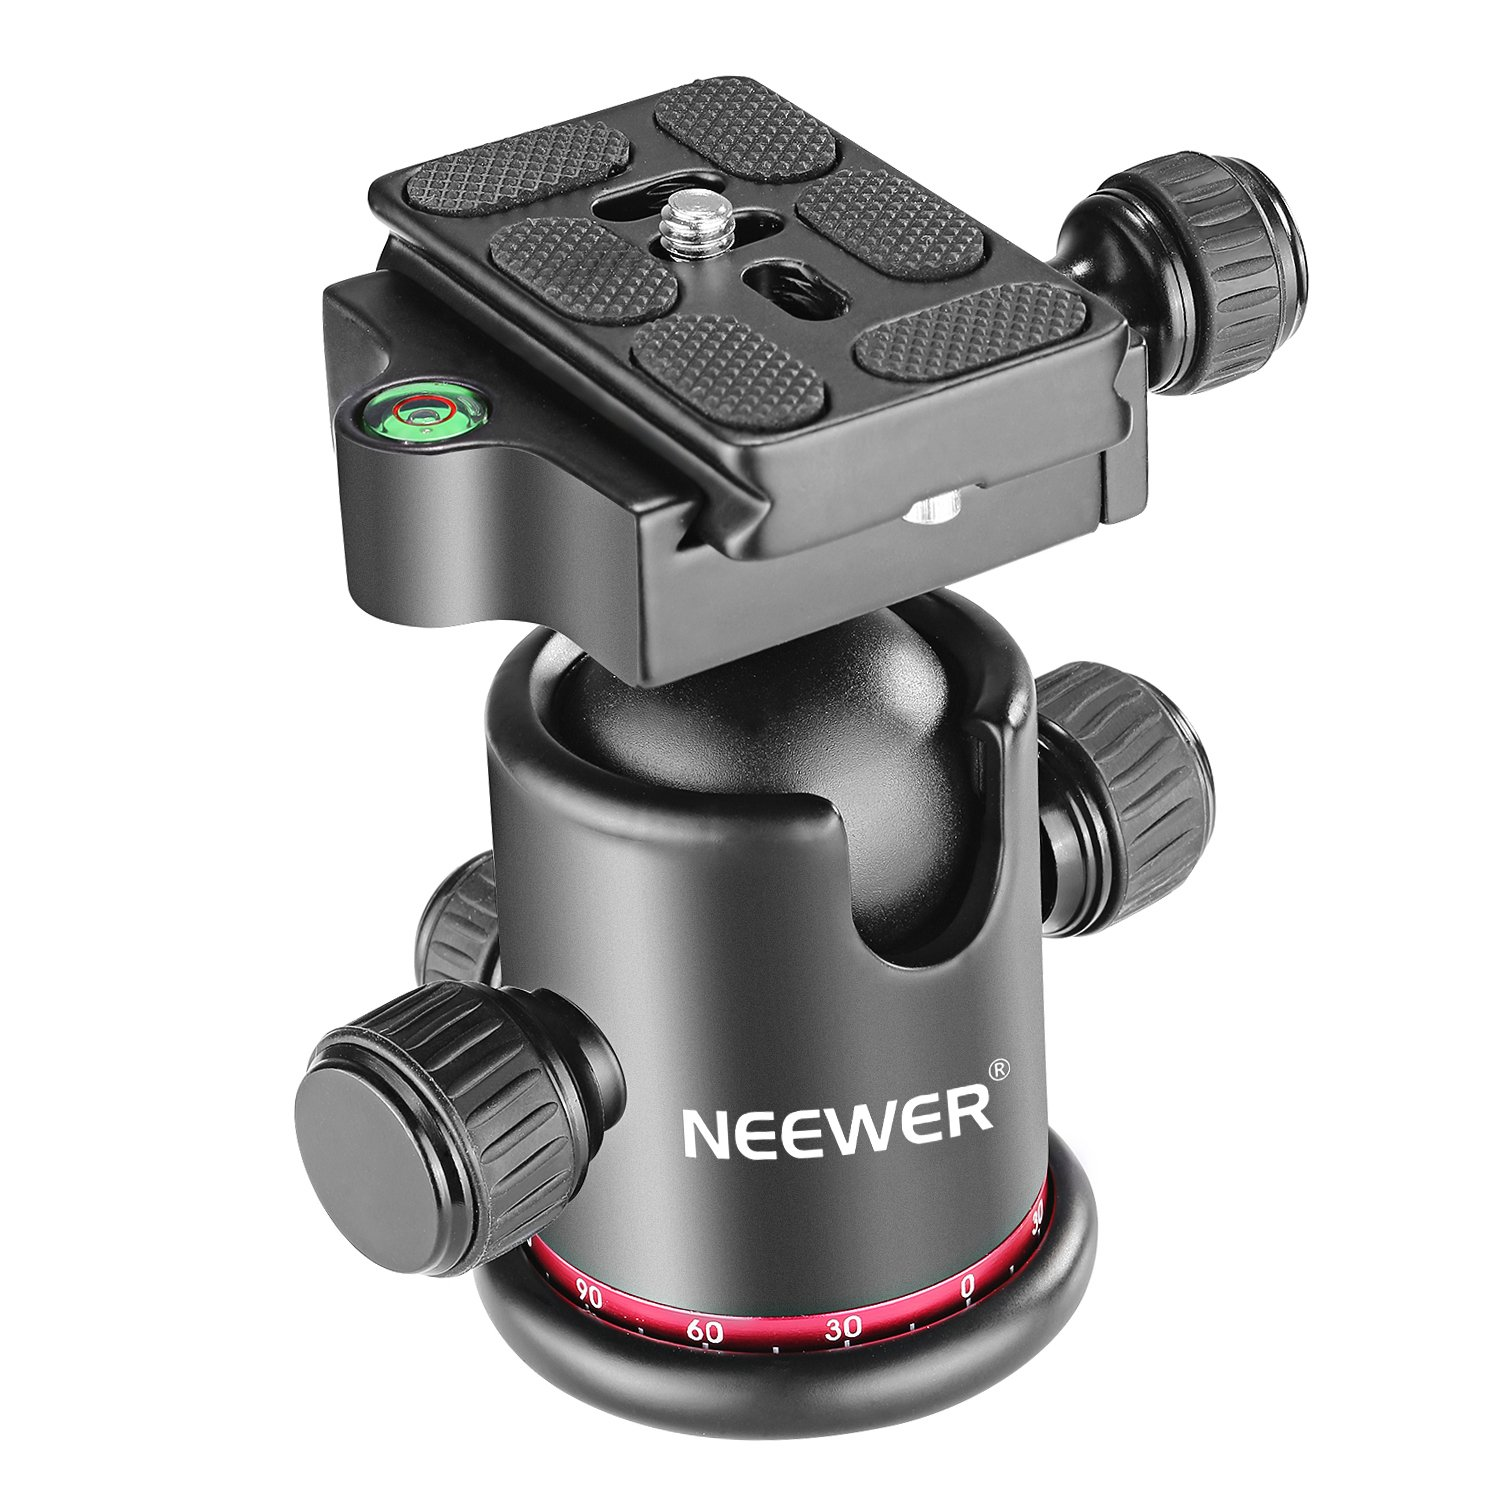 Neewer Professional Metal 360 Degree Rotating Panoramic Ball Head with 1/4 inch Quick Shoe Plate and Bubble Level,up to 17.6pounds/8kilograms,for Tripod,Monopod,Slider,DSLR Camera,Camcorder